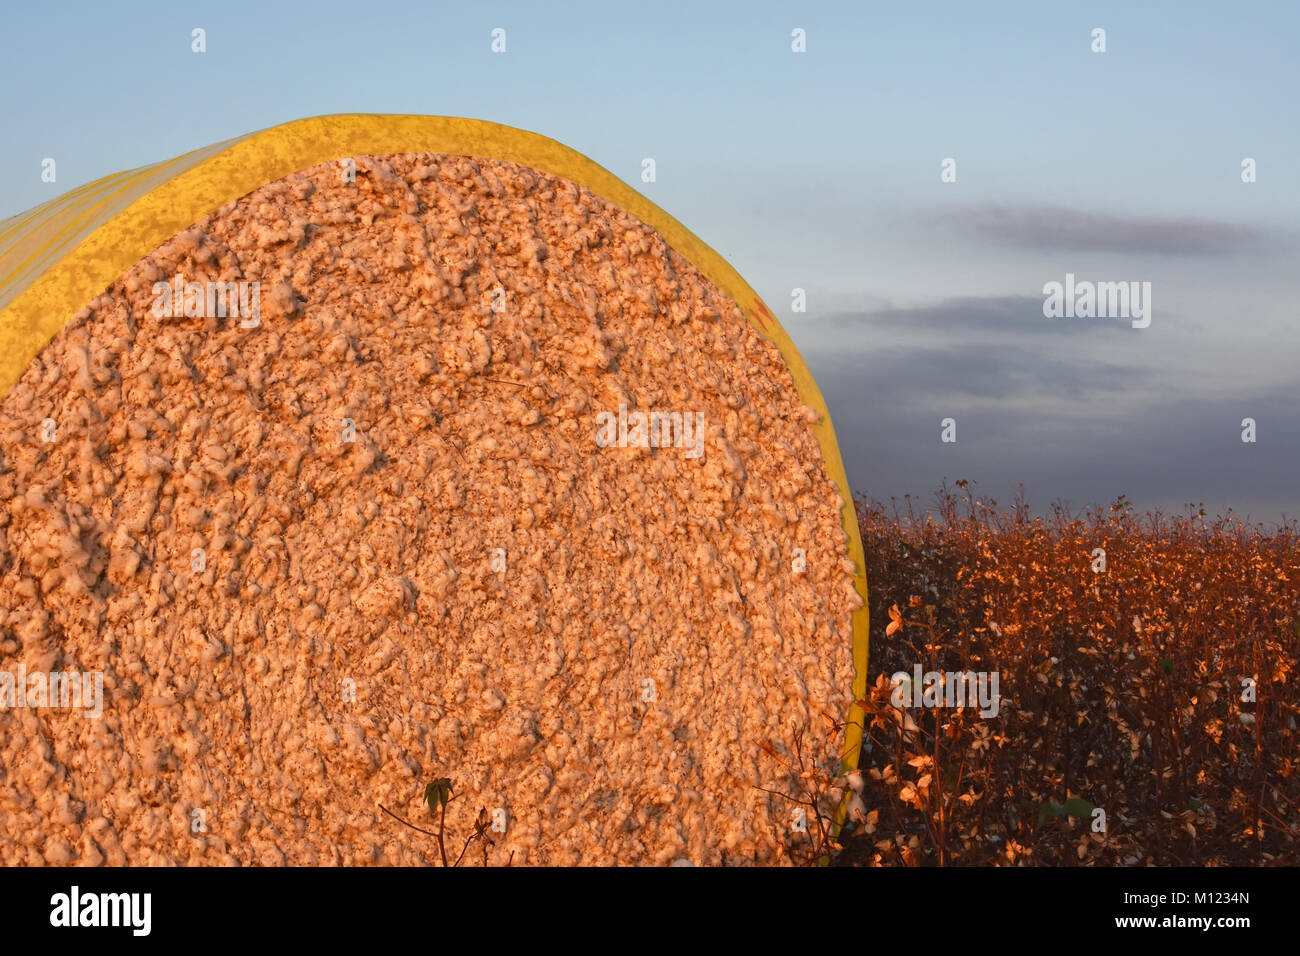 Cotton bale in the field - Stock Image